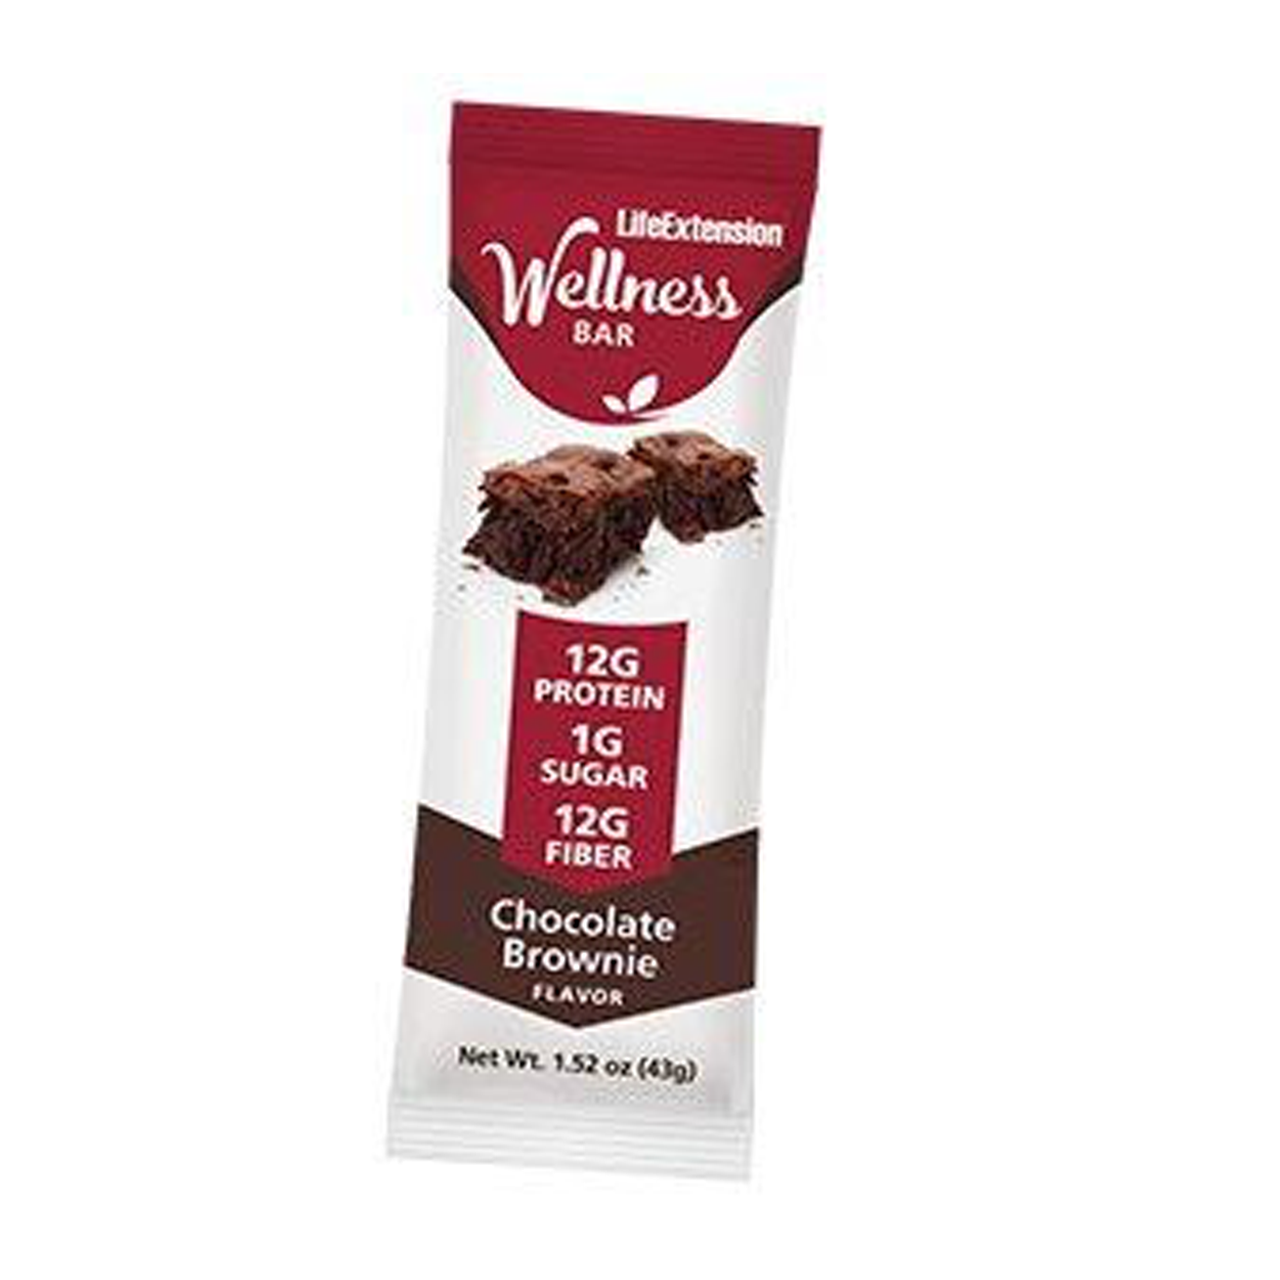 Barrita de proteina - WELLNESS BAR CHOCOLATE BROWNIE (12g de Proteína)